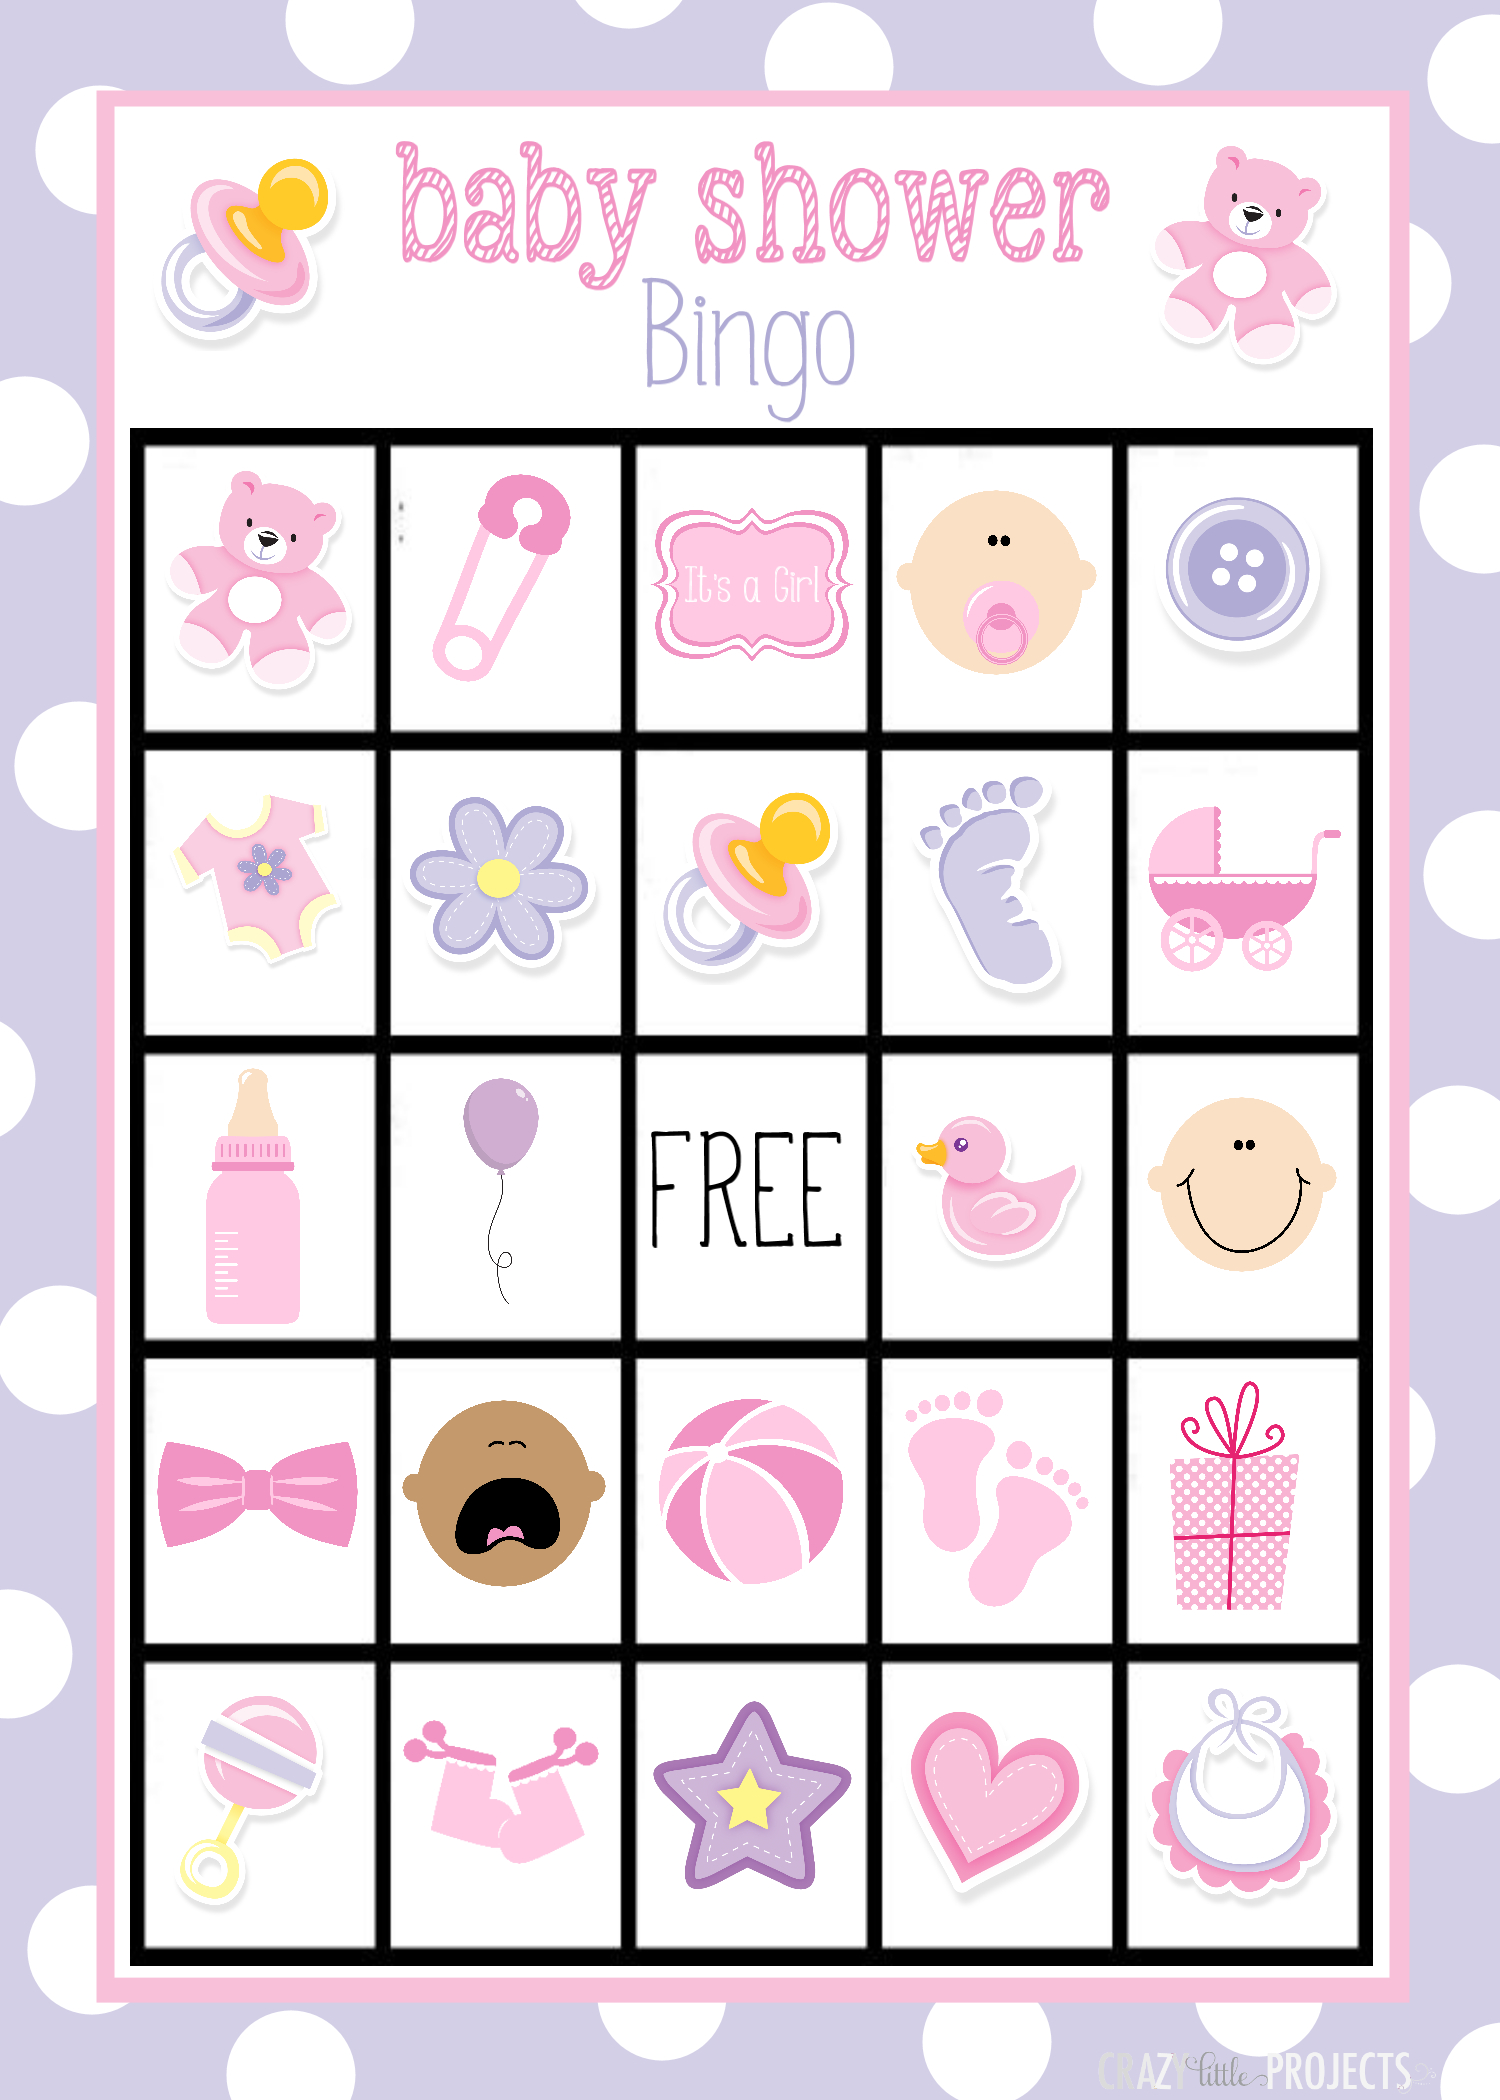 Printable Baby Shower Bingo Cards - Ideeën Voor Babyshowers